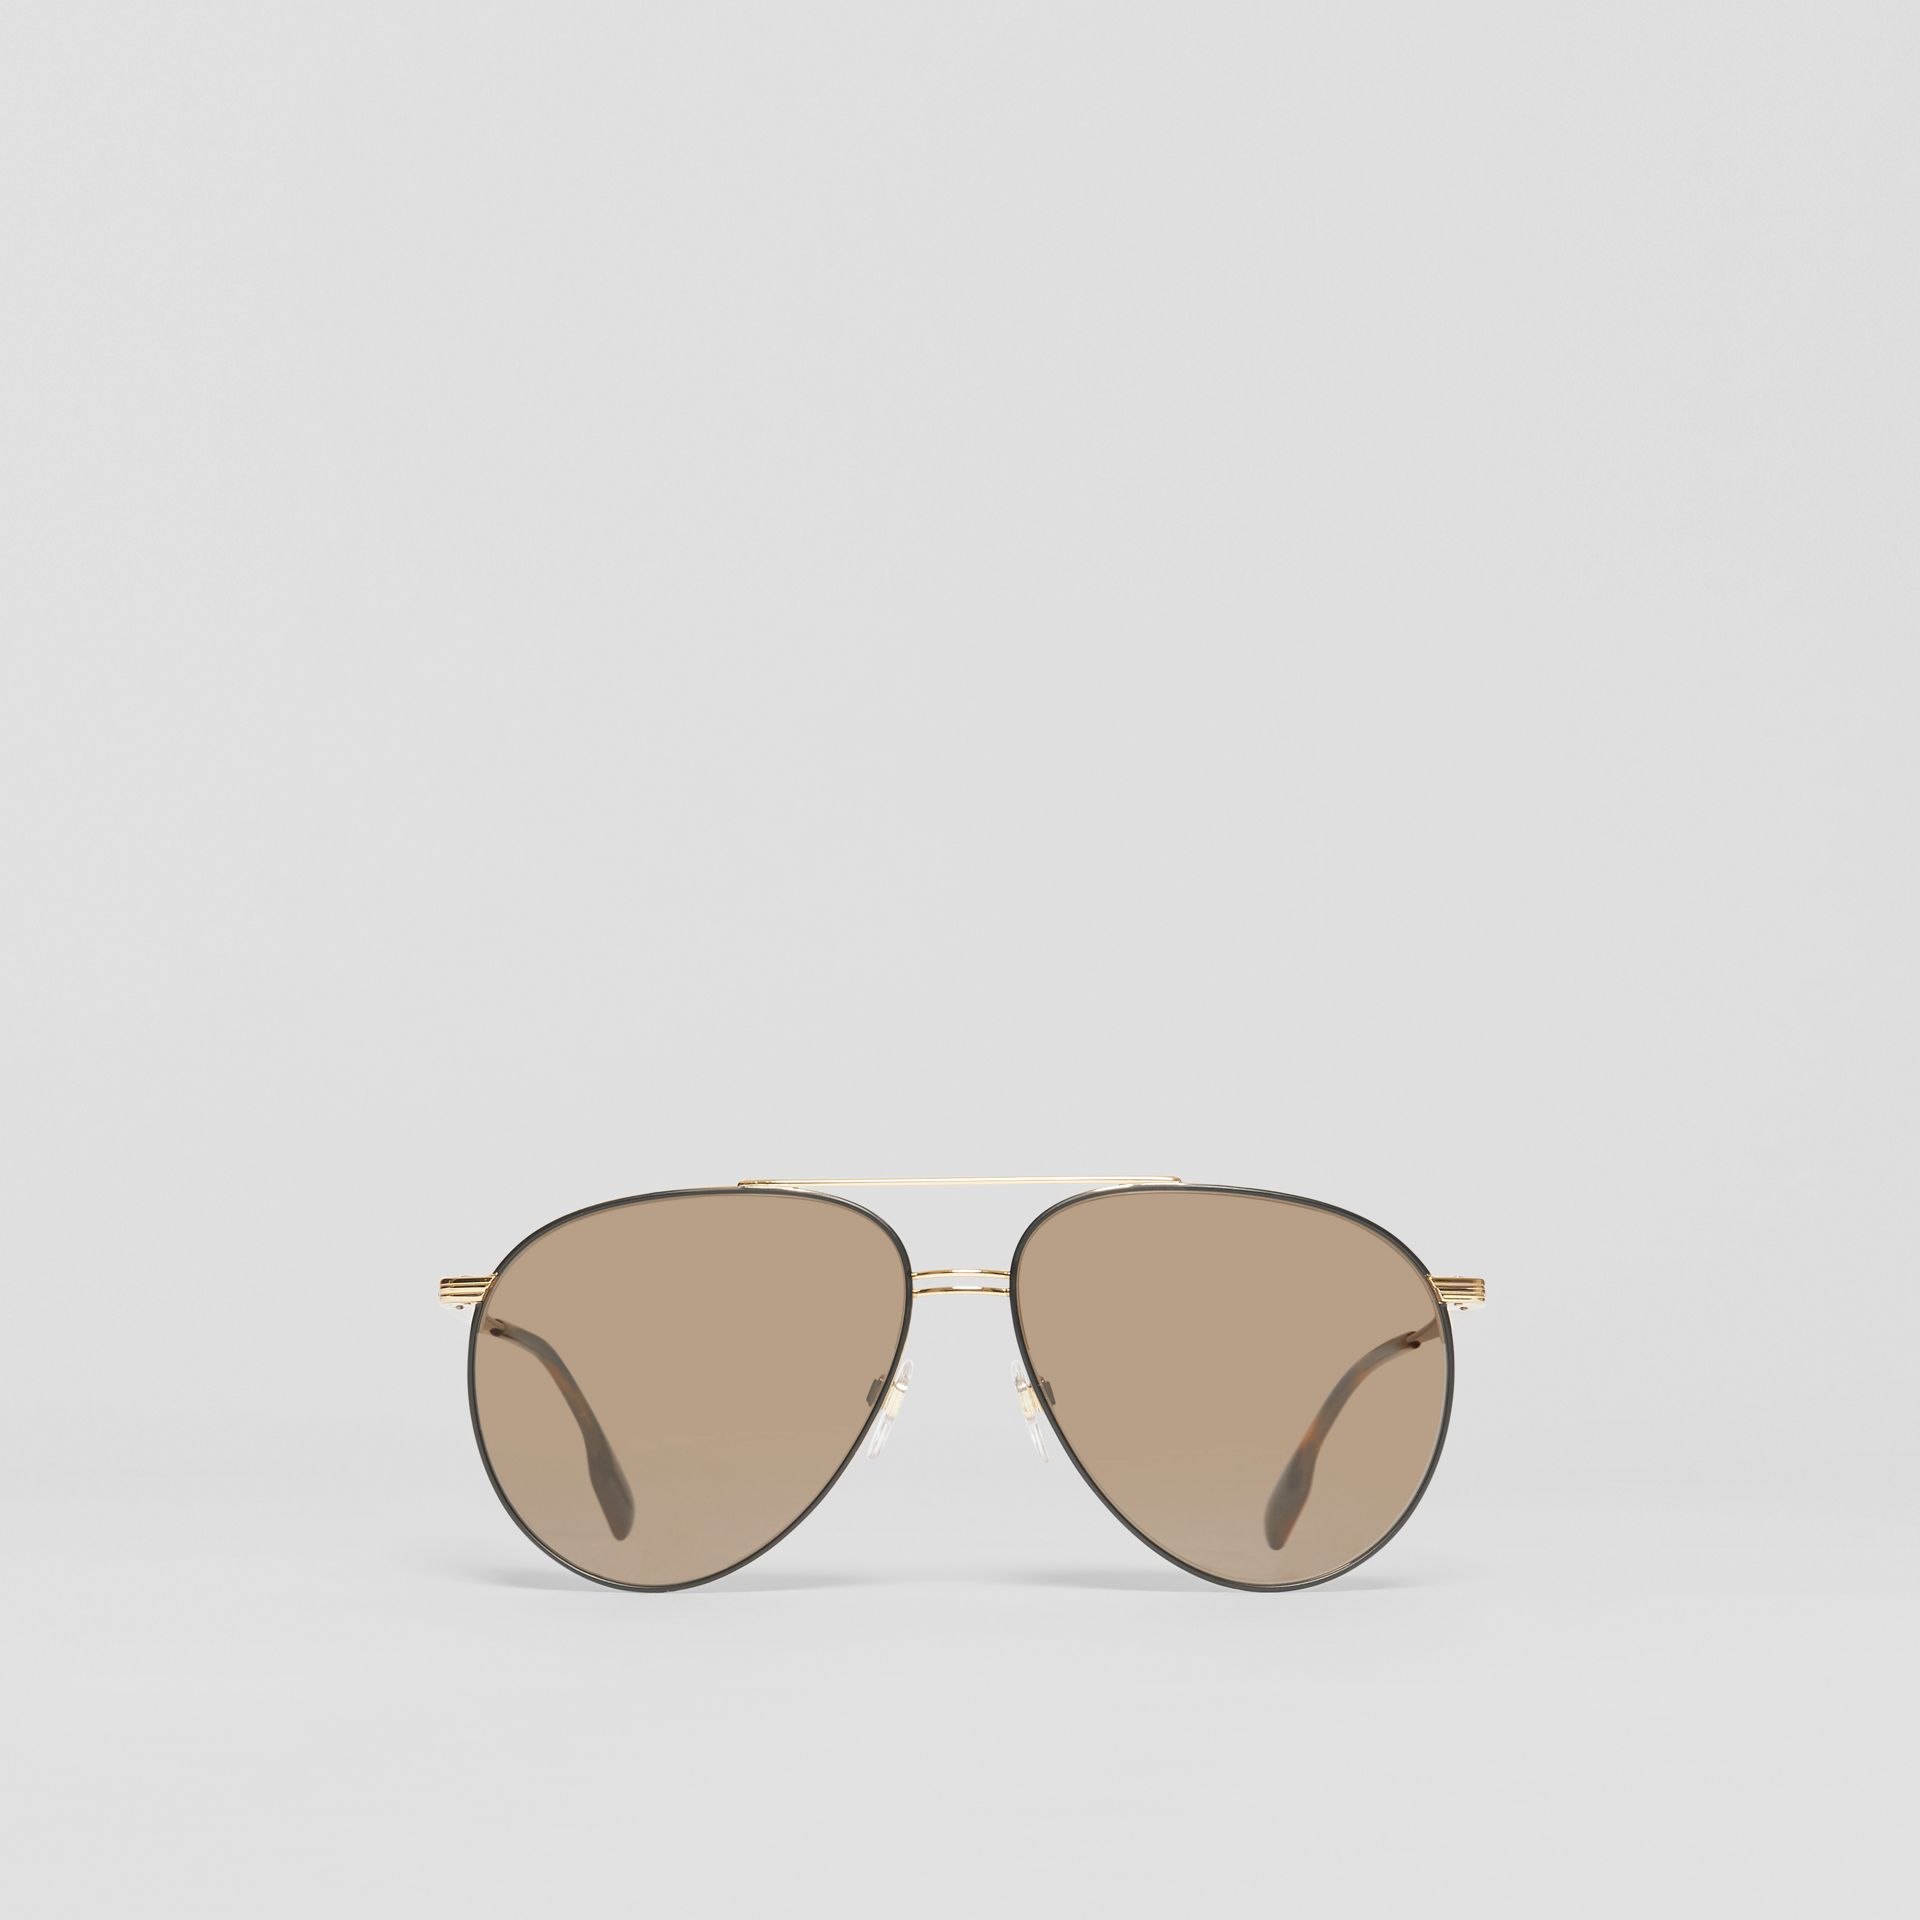 Top Bar Detail Pilot Sunglasses in Tortoiseshell - Men | Burberry Australia - gallery image 0